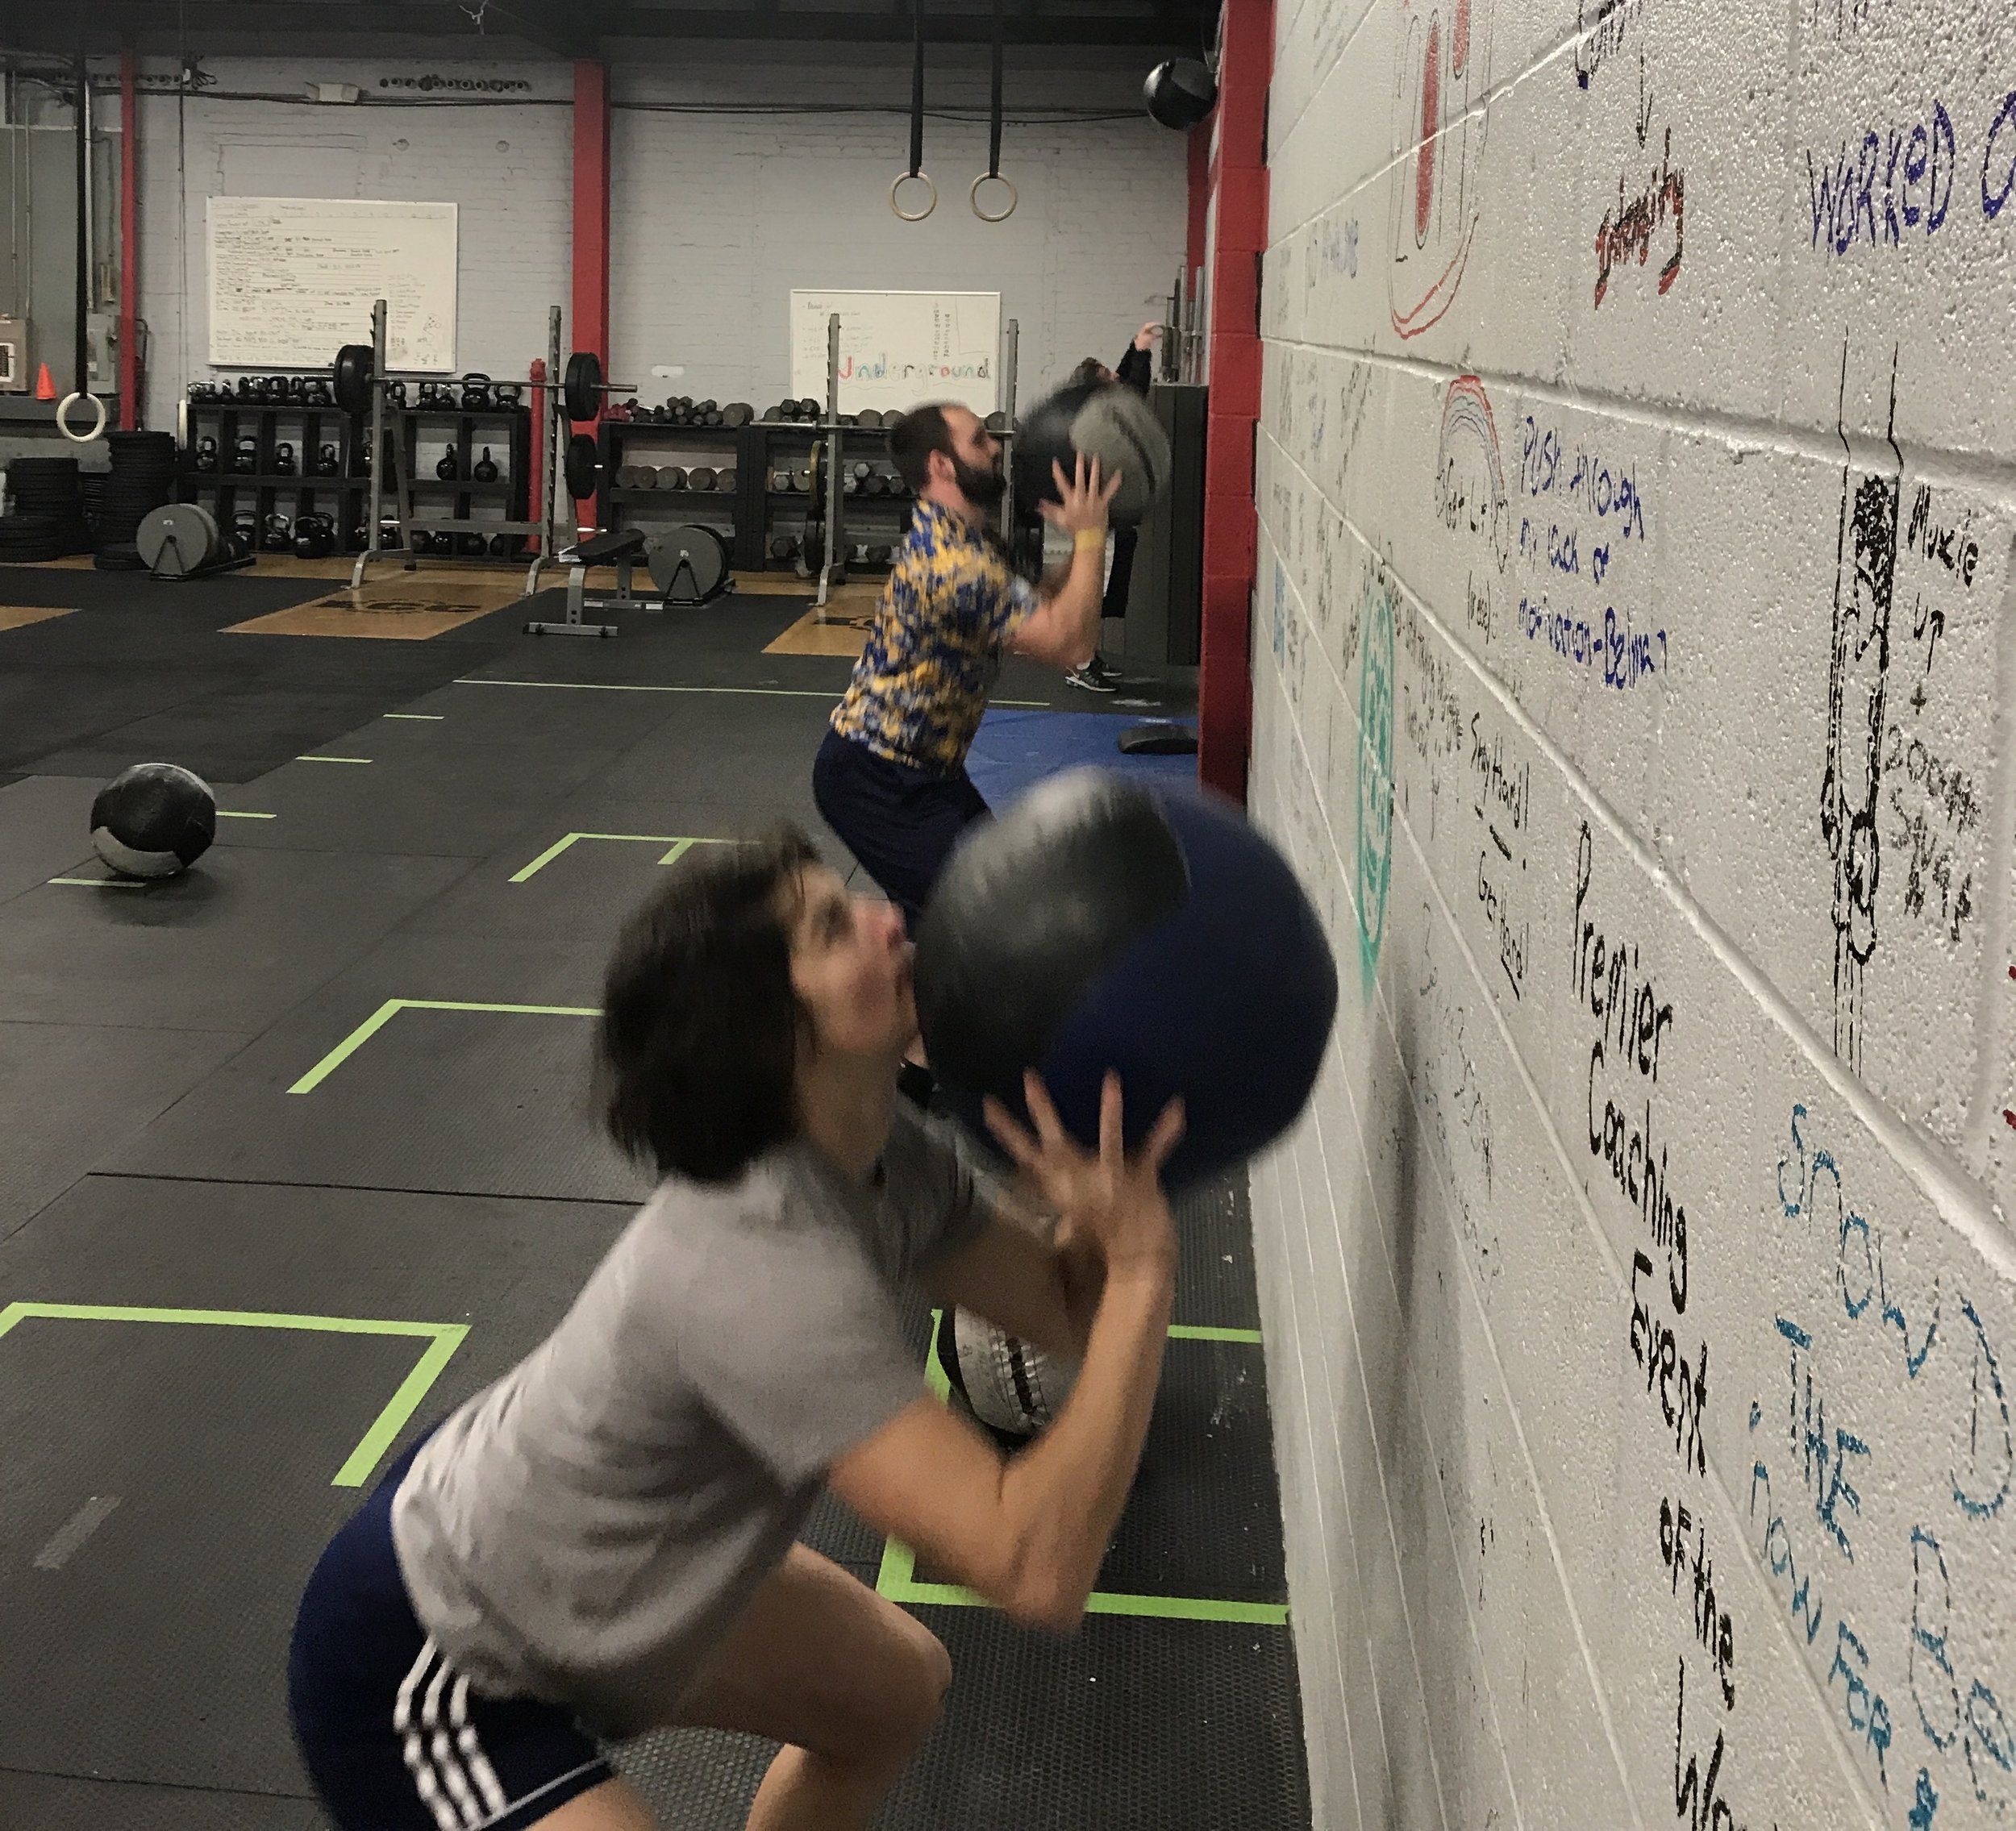 New Haven Rugby ~ Friend who workout together…. Stay together :)